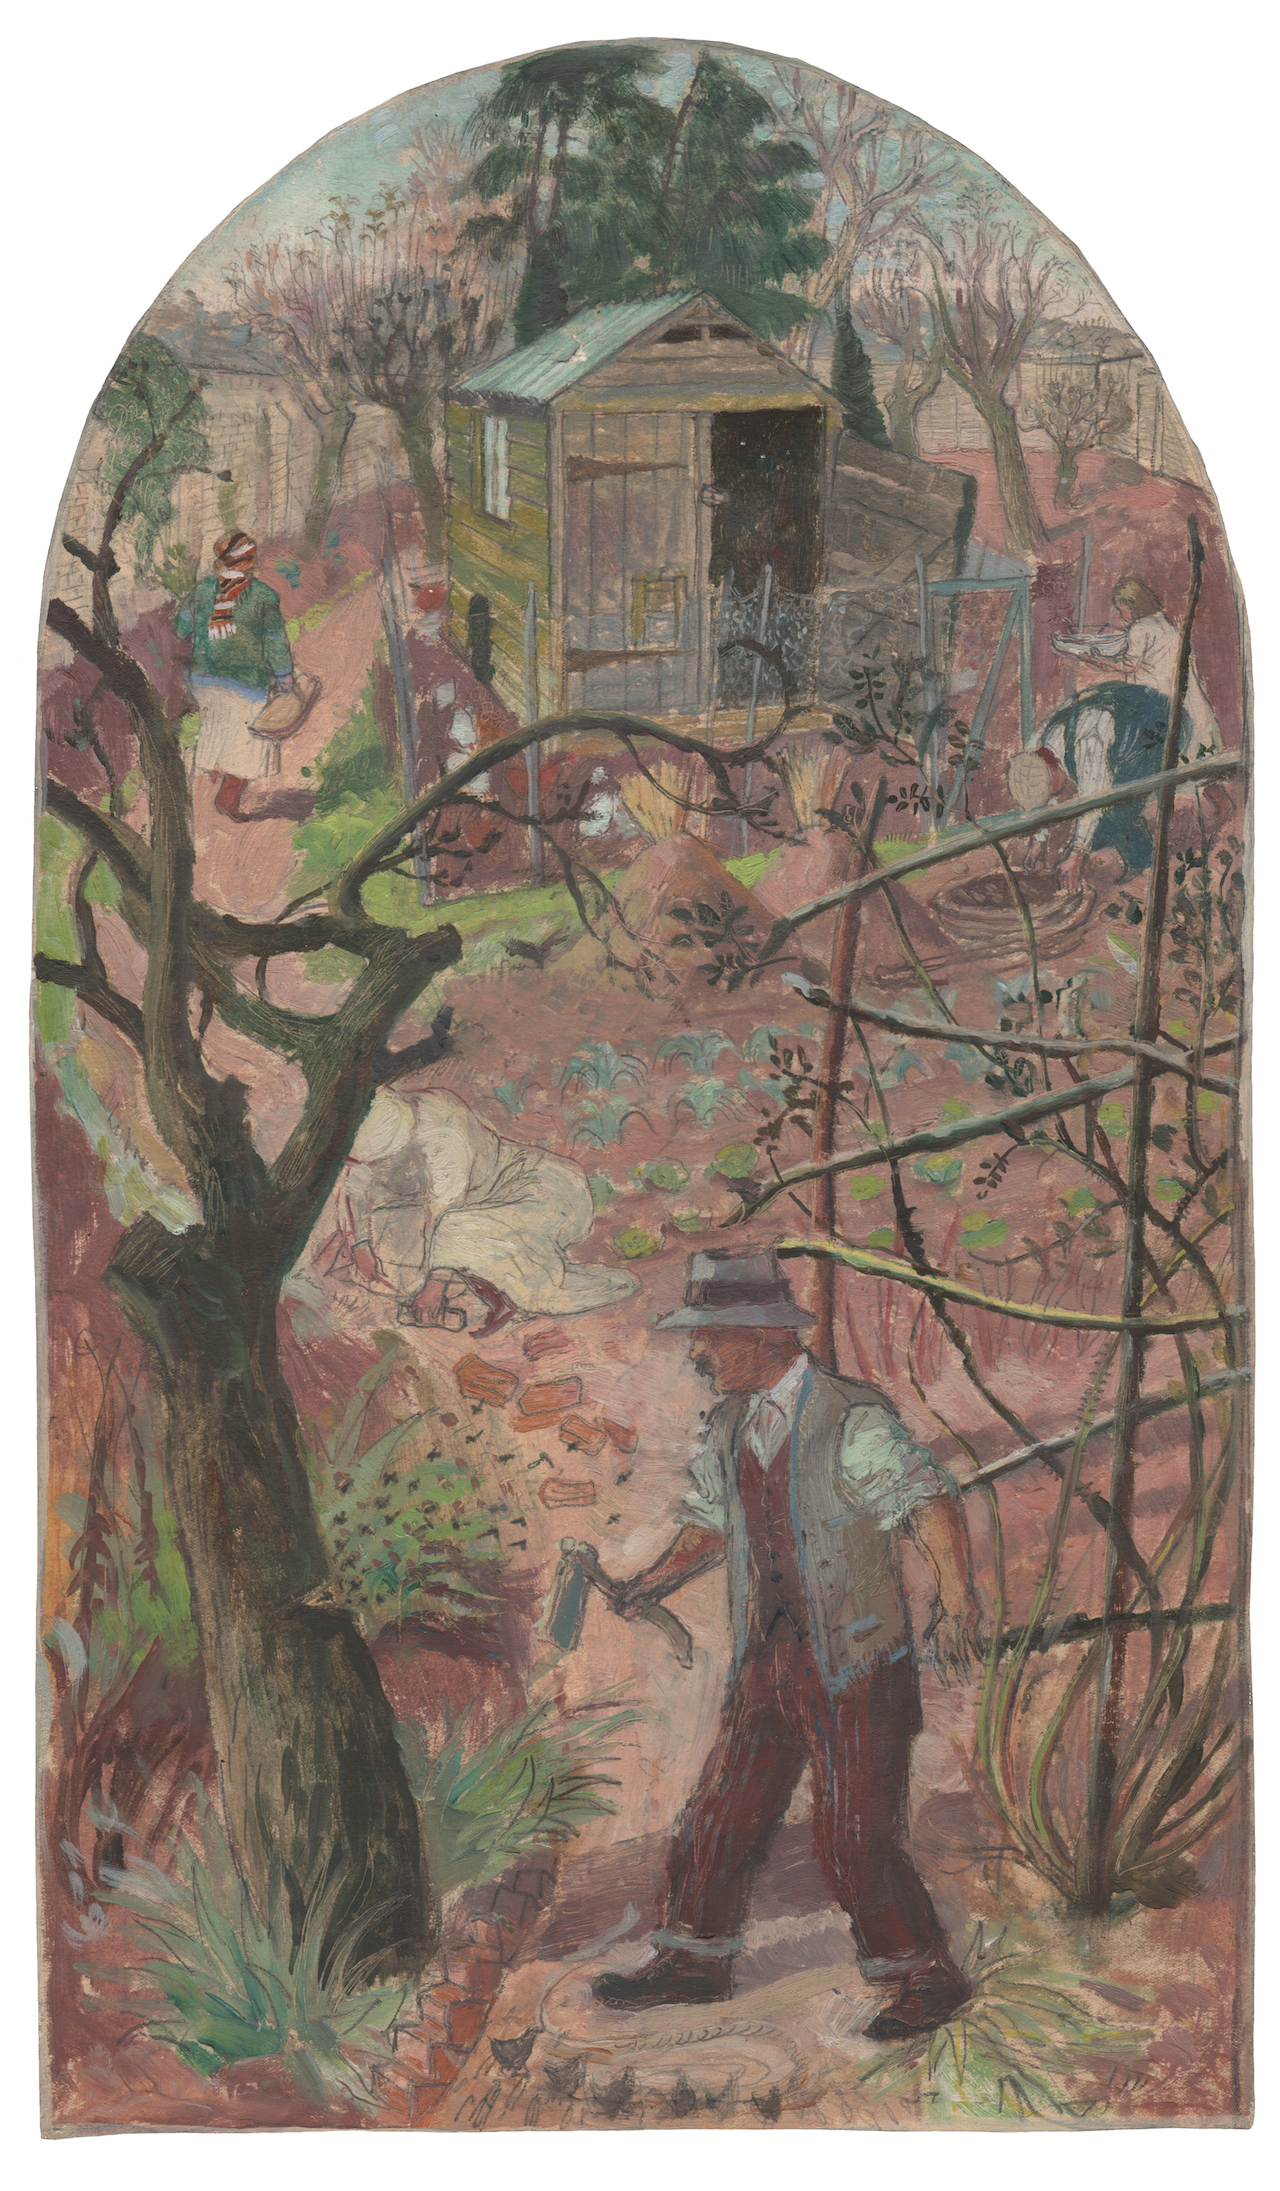 """Evelyn Dunbar, """"The Woodcutter and the Bees"""" (1933), pencil and oil on paper (© The Artist's Estate, courtesy of Liss Llewellyn Fine Art)"""